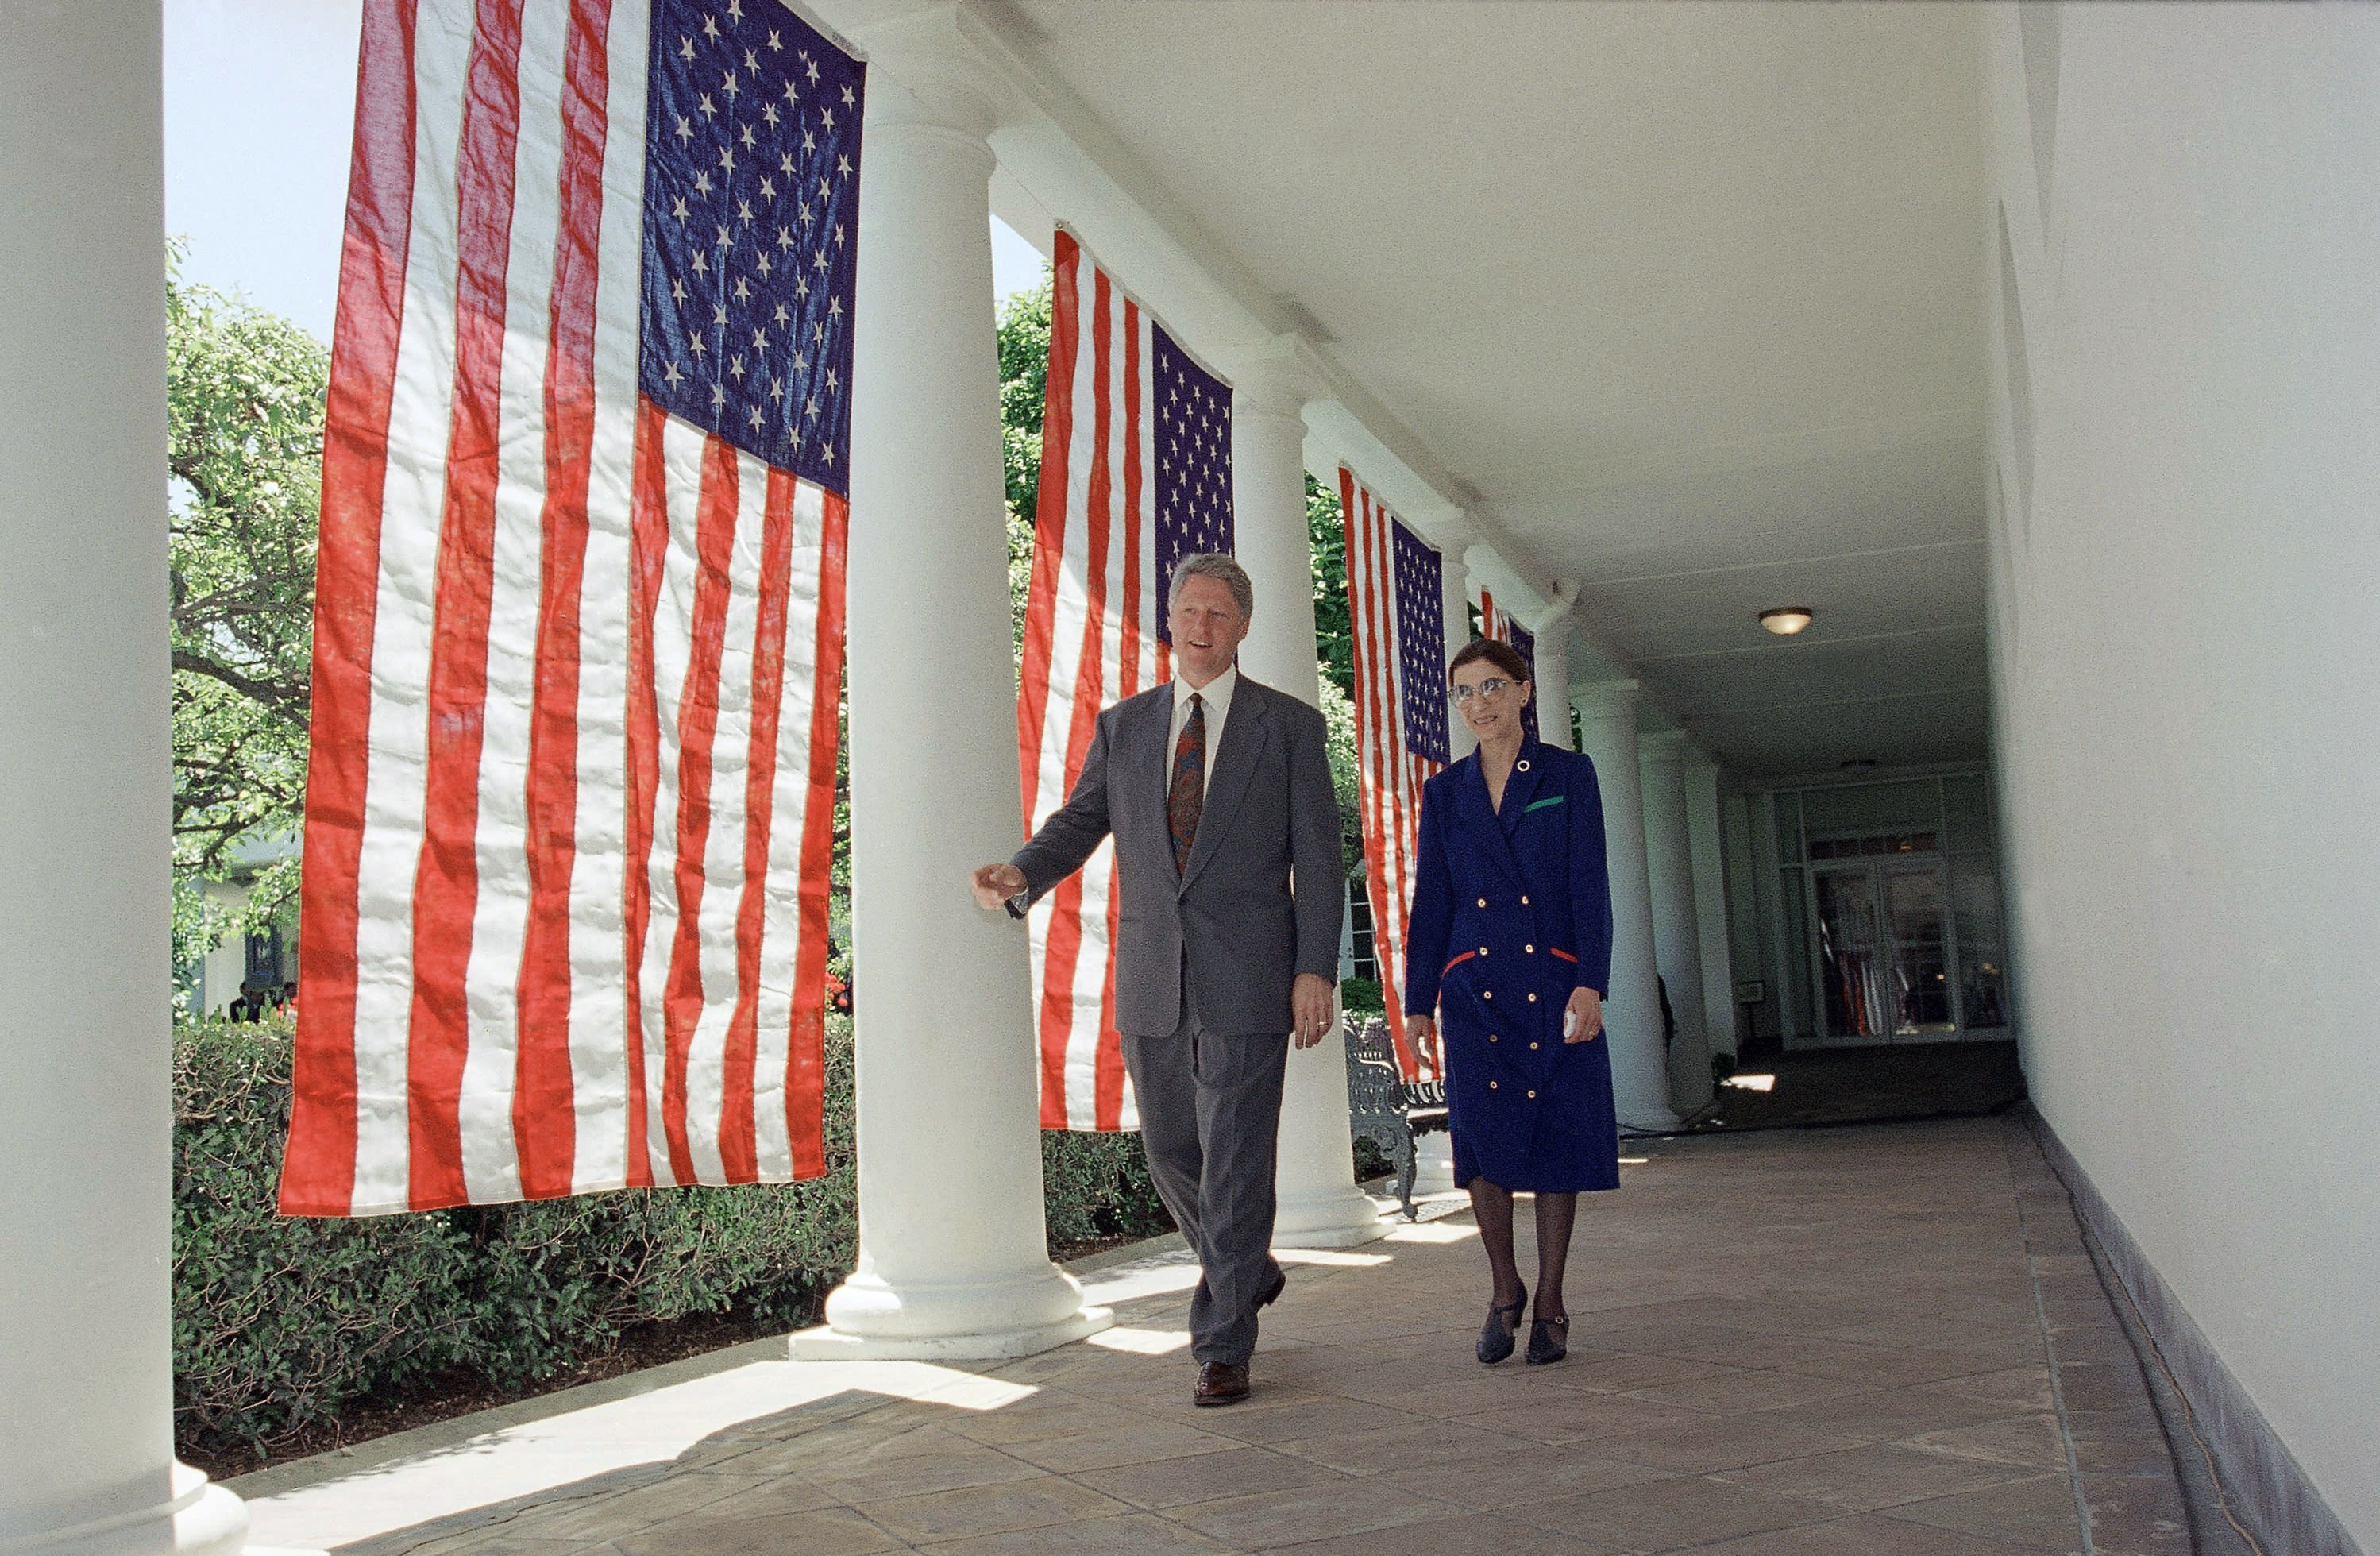 FILE - In this June 14, 1993, file photo, President Bill Clinton and Judge Ruth Bader Ginsburg walk along the Colonnade of the White House in Washington, as they head to the Rose Garden for a news conference where the President nominated Ginsburg to fill the vacancy on the Supreme Court. The Supreme Court says Ginsburg has died of metastatic pancreatic cancer at age 87. (AP Photo/Doug Mills, File)